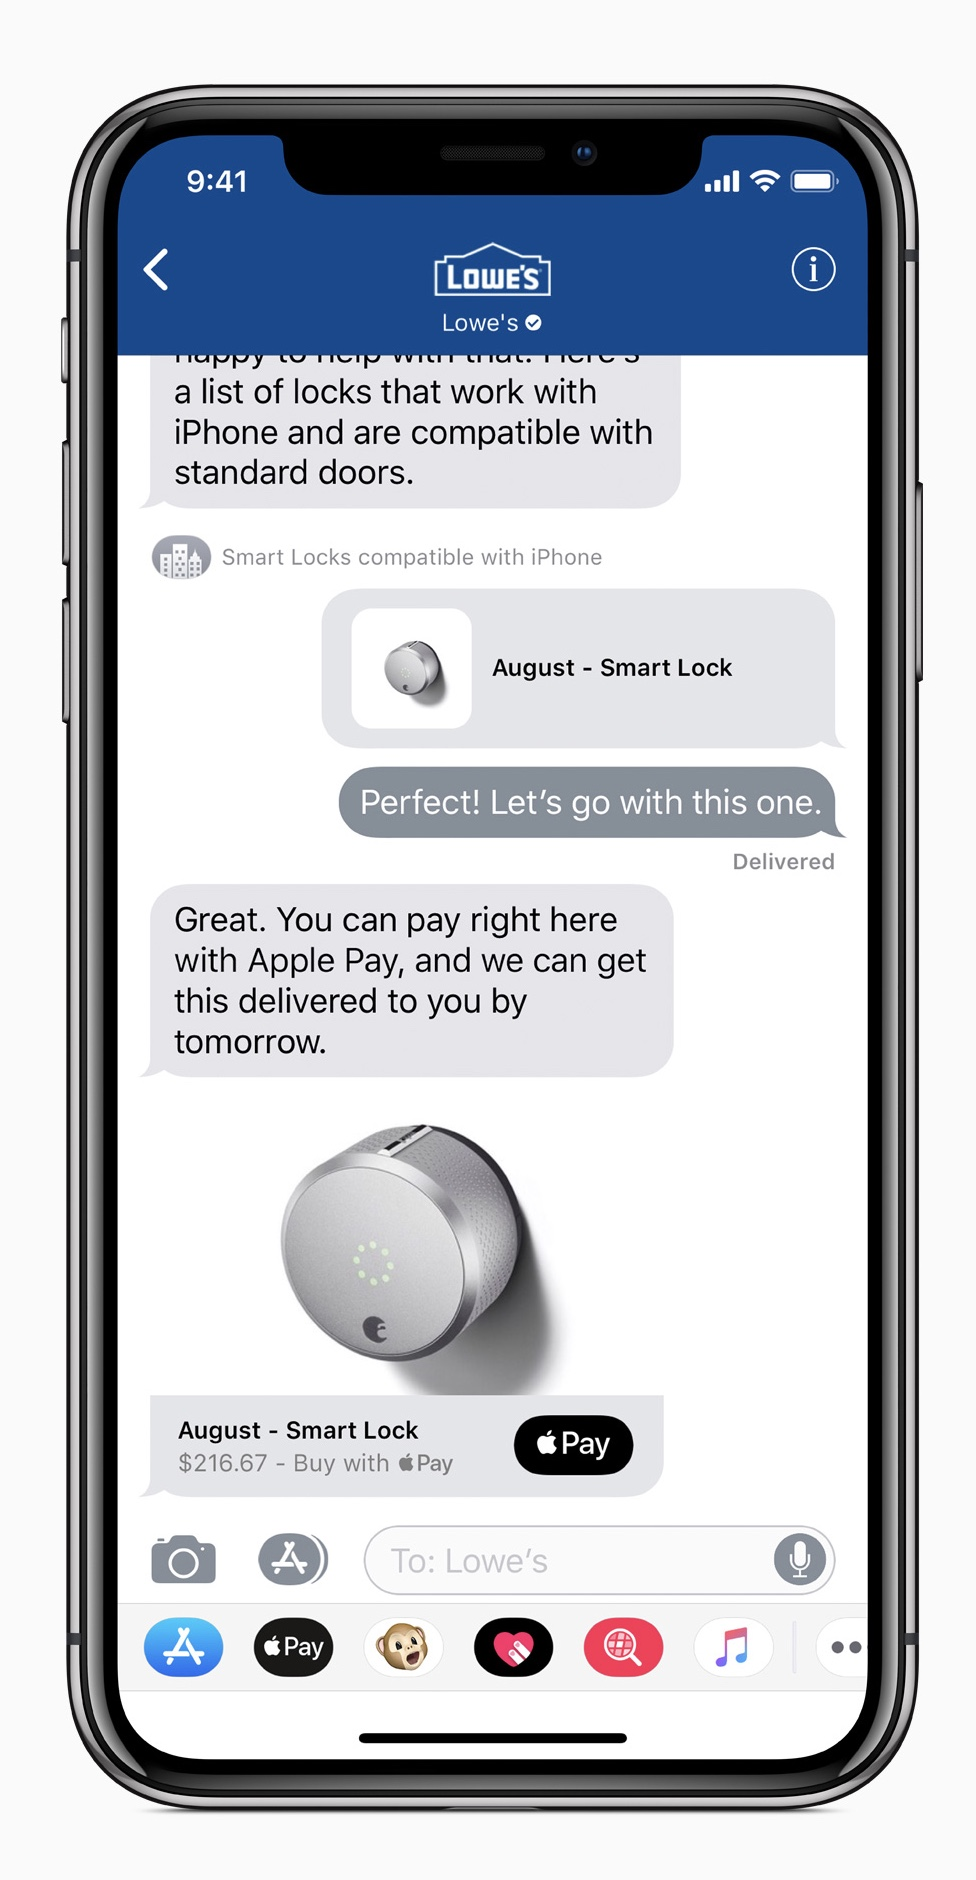 Business Chat lets users communicate directly with businesses like Lowe's right within the Messages app.